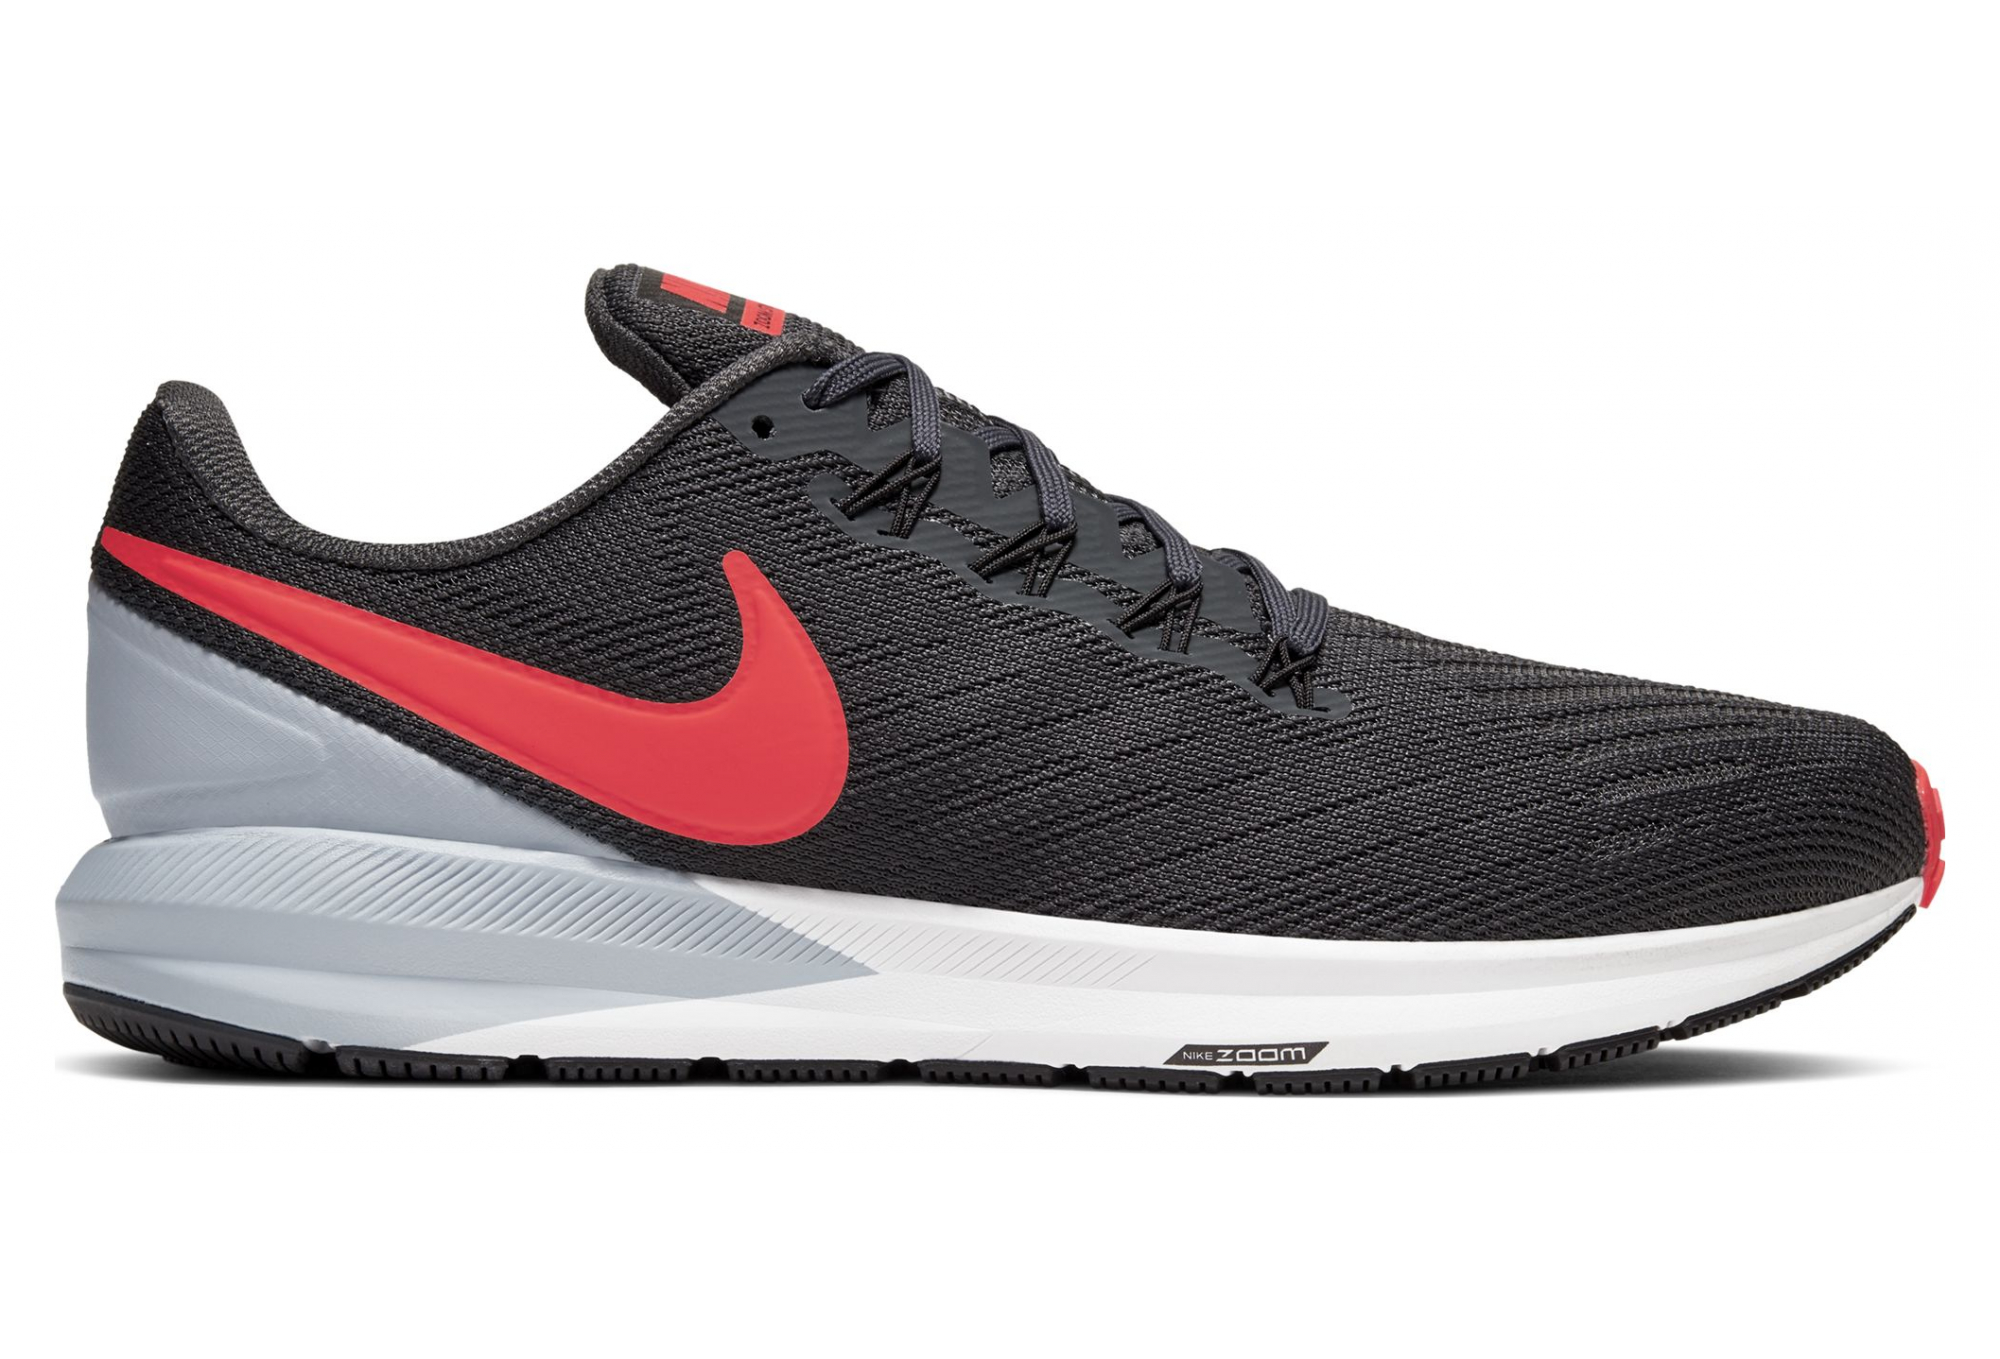 Chaussures de Running Homme NIKE Air Zoom Structure 22 Gris Rouge